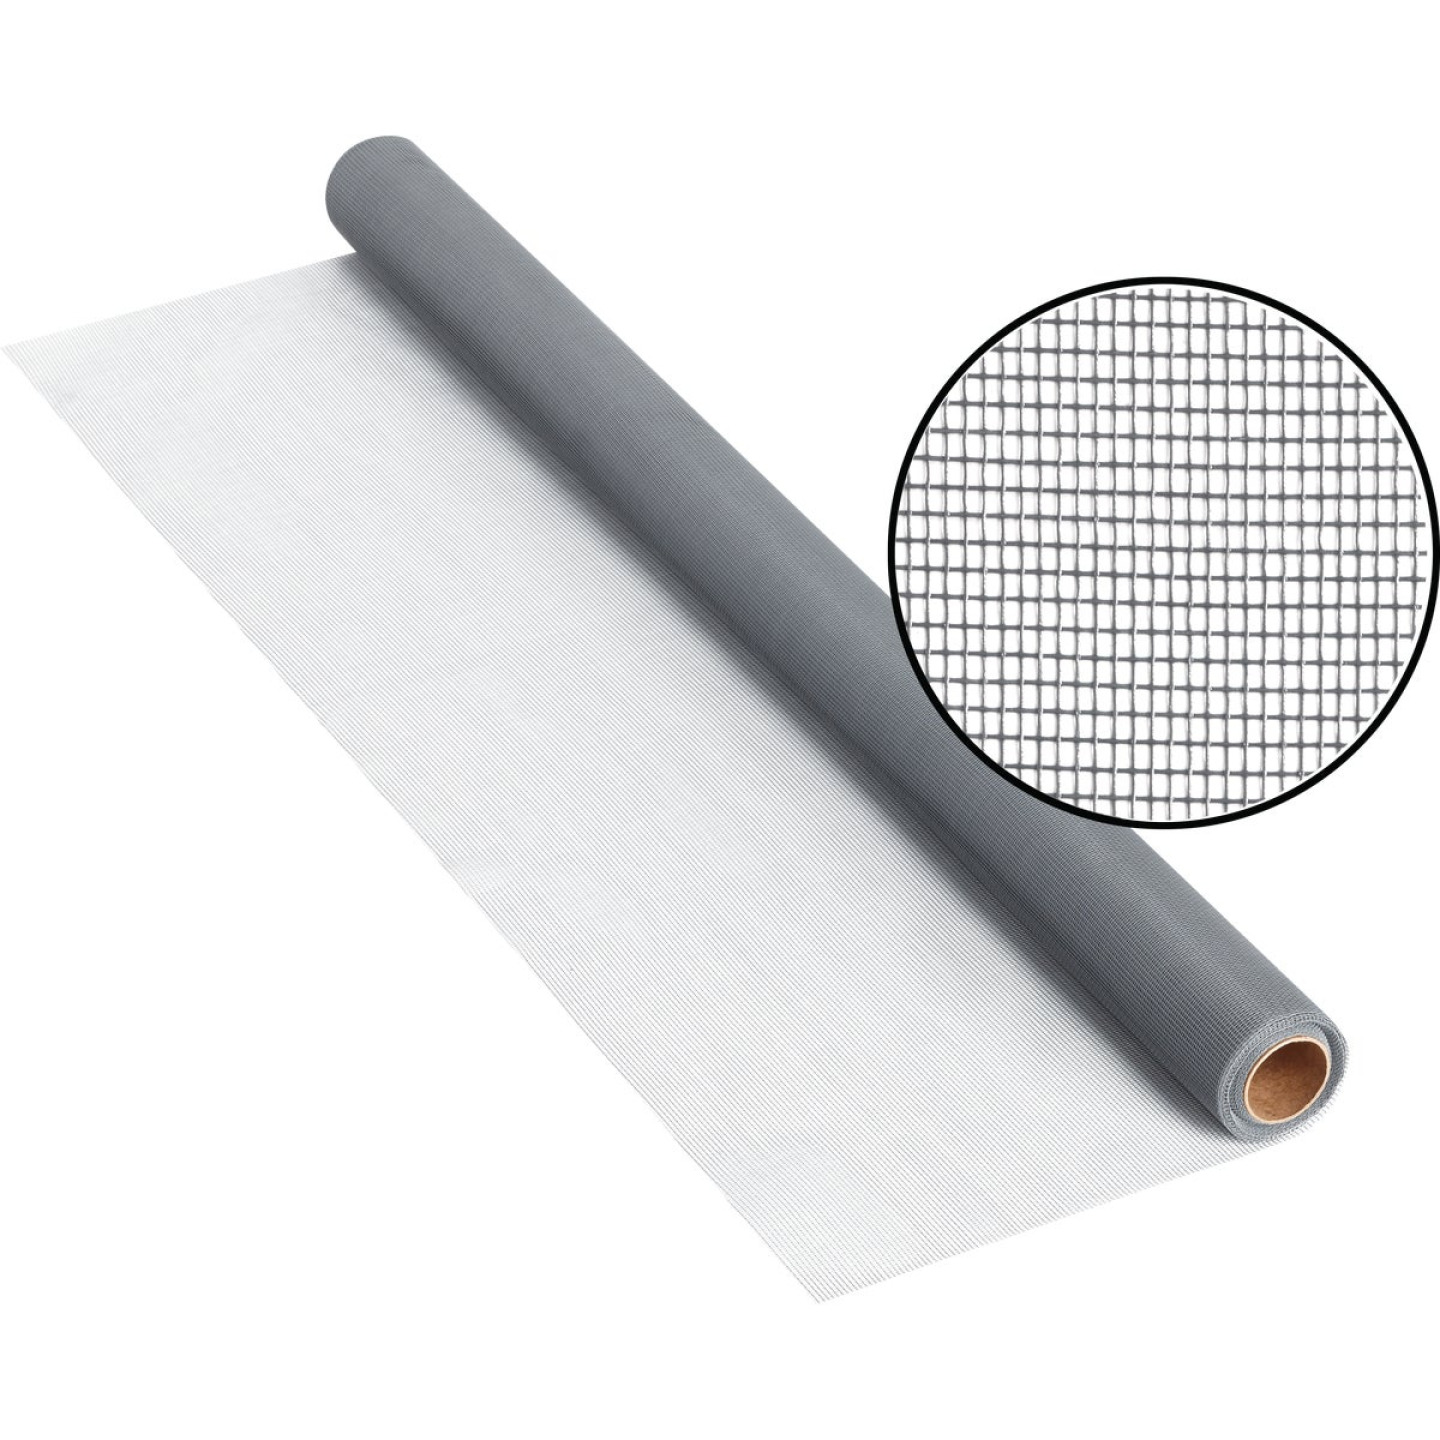 Phifer 48 In. x 25 Ft. Gray Fiberglass Screen Cloth Image 1